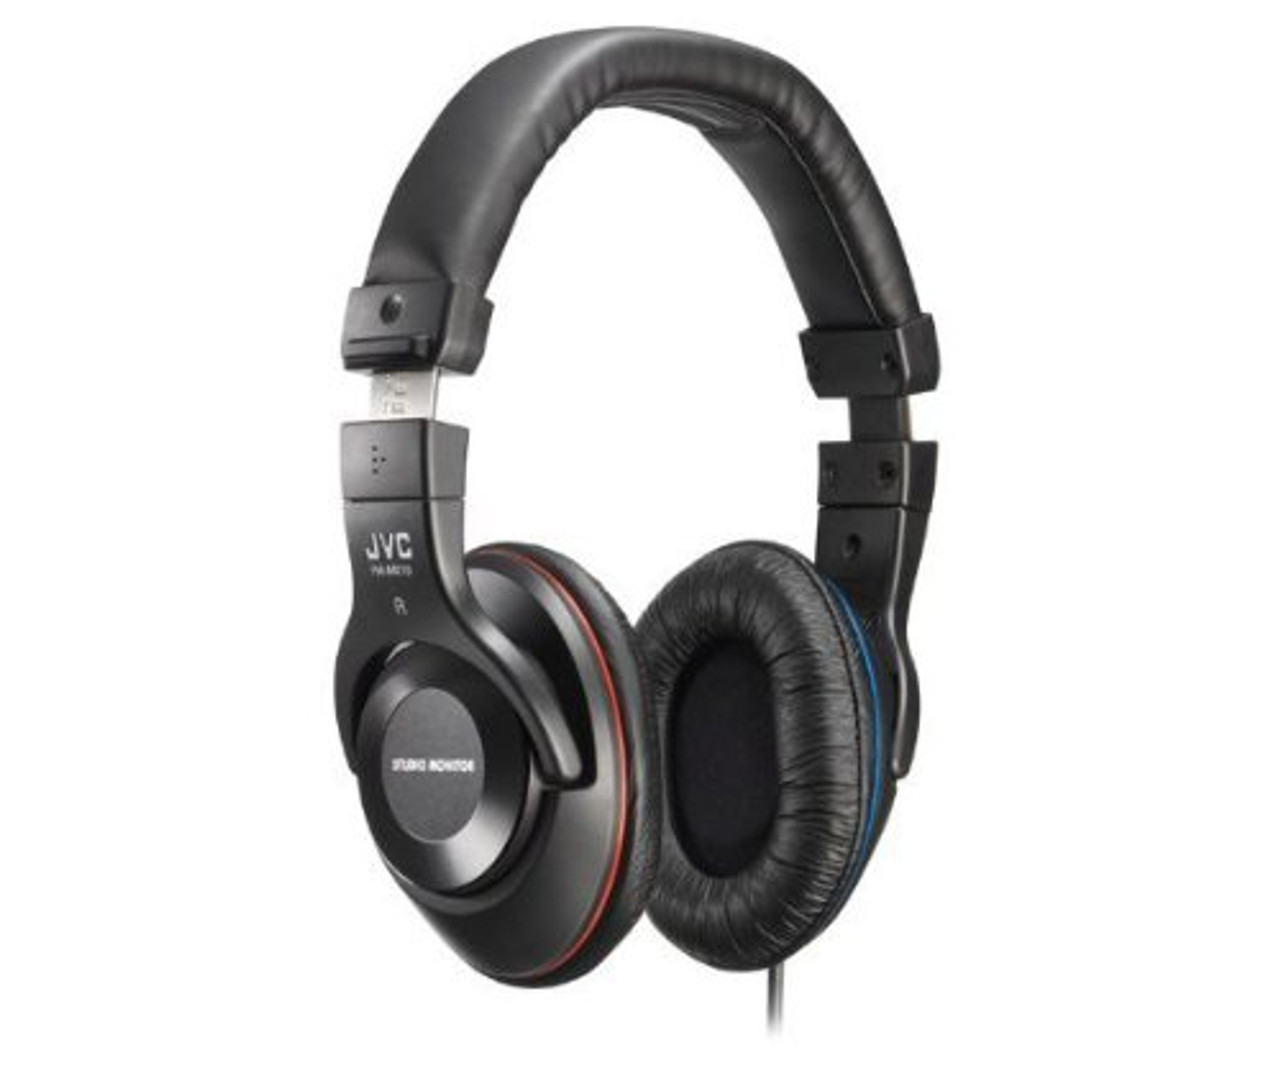 JVC HA-MX10 Studio Monitor Headphones